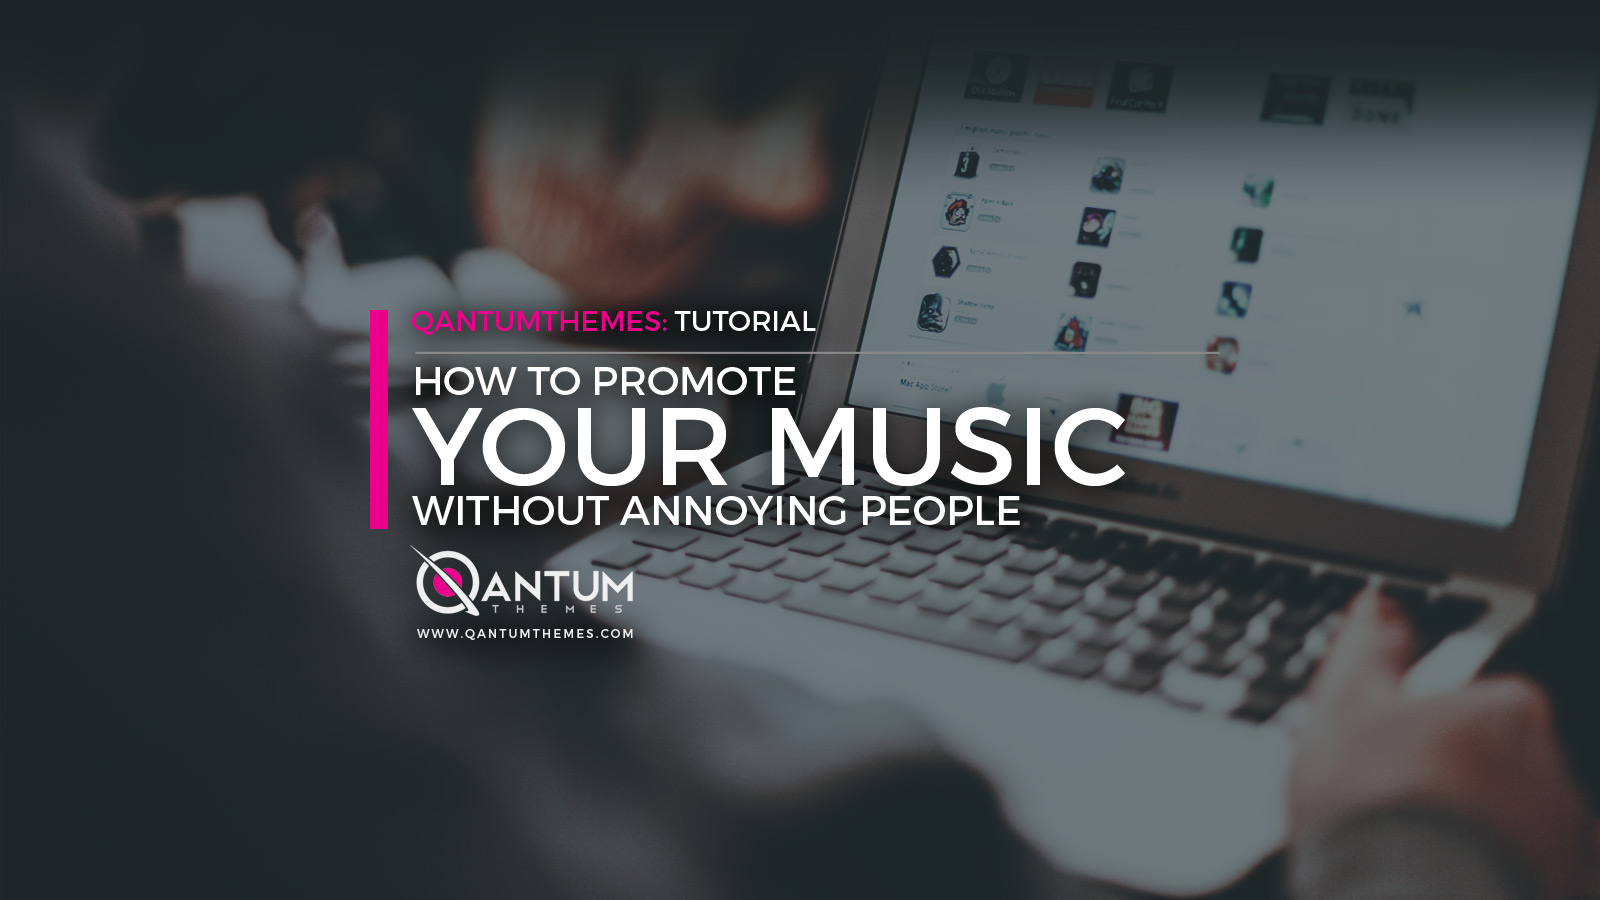 How To Promote Your Music Without Annoying People